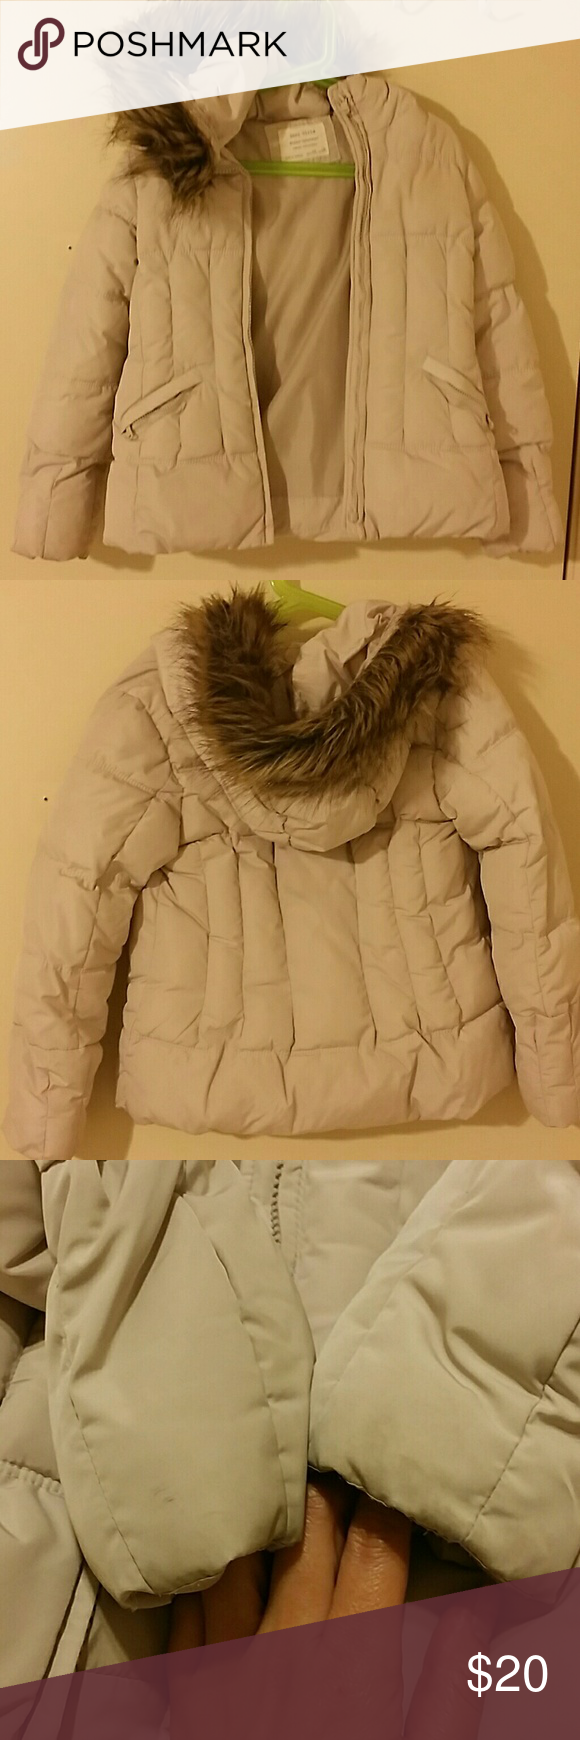 Too small Puff jacket for casual look, not too heavy, minor stains from the edges of both arms by the wrist, can be removed if clean it properly Zara Girls Jackets & Coats Puffers